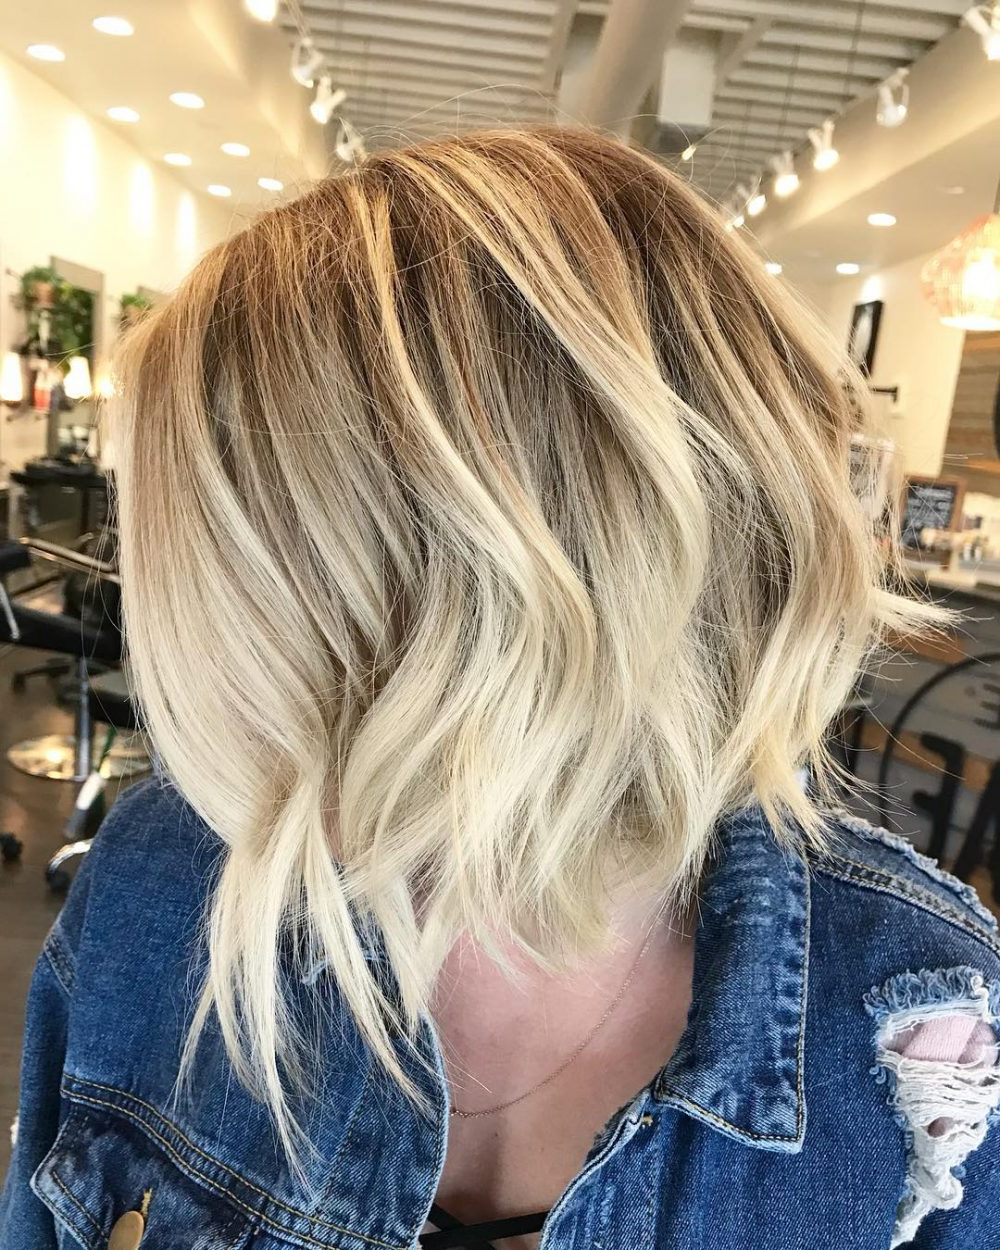 34 Best Choppy Layered Hairstyles (that Will Flatter Anyone) Pertaining To Famous Shoulder Grazing Razored Haircuts For Straight Hair (View 6 of 20)